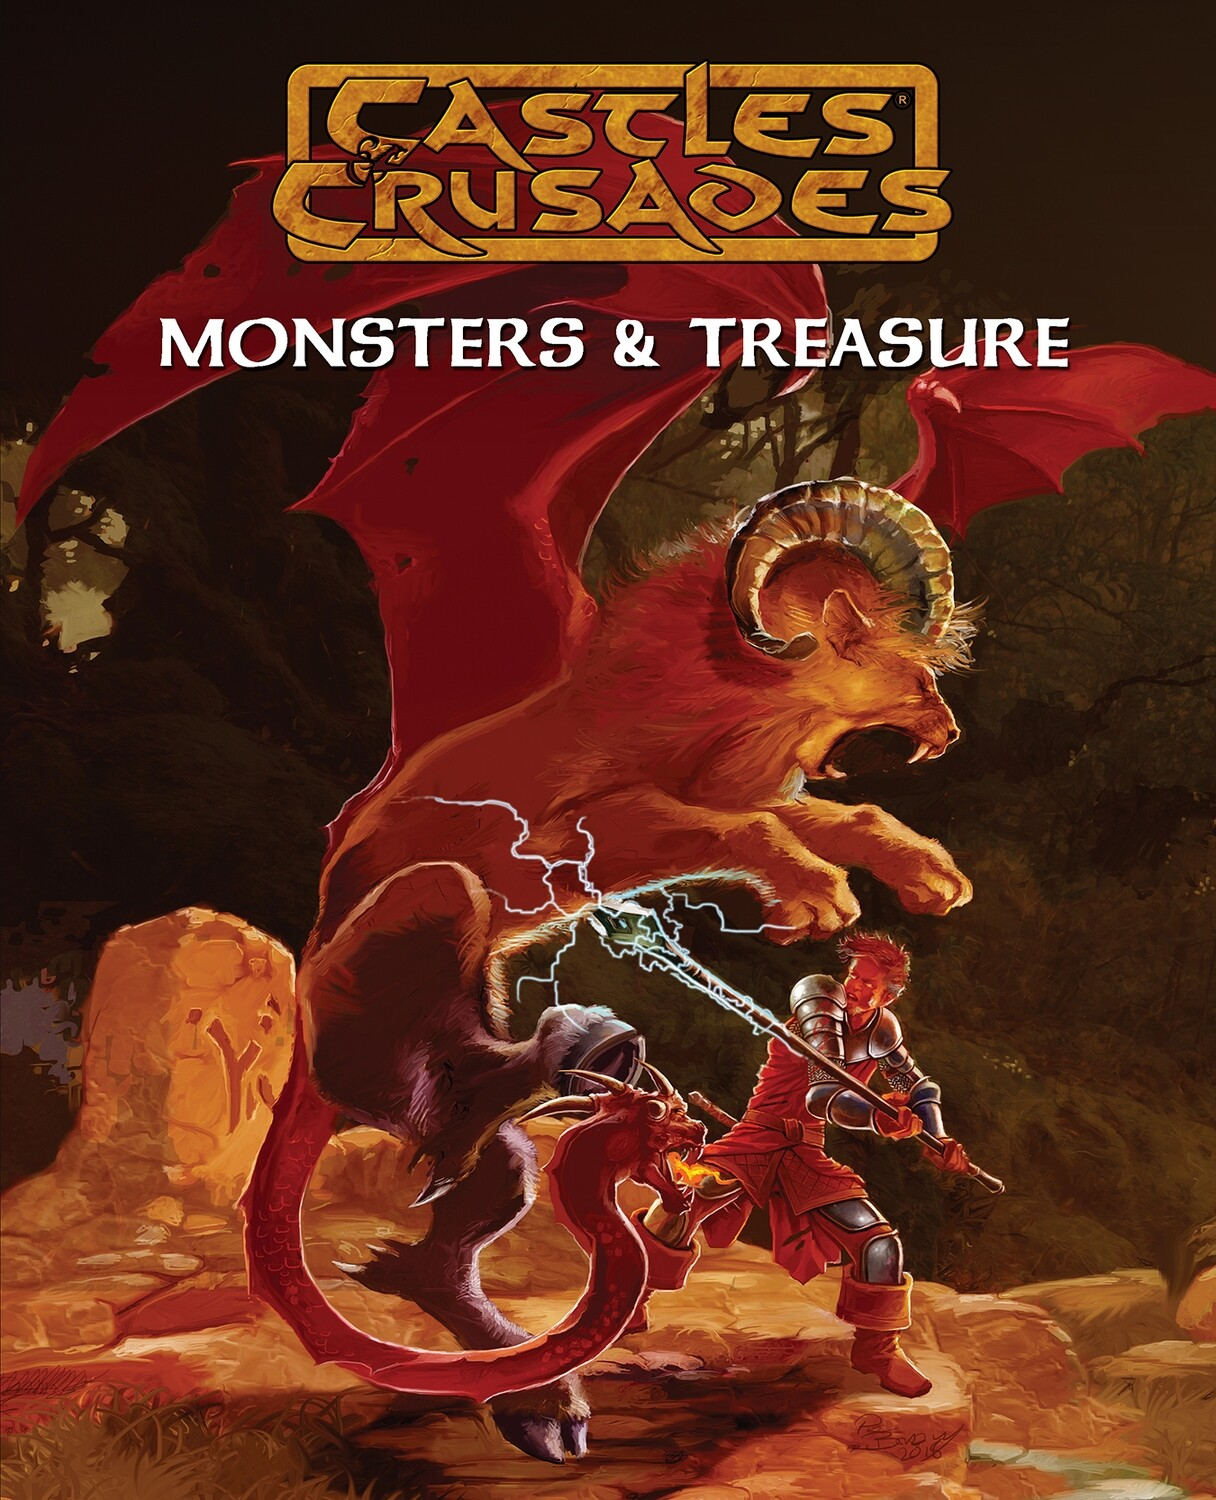 Monsters and Treasures 5th Printing: Castle and Crusades RPG -  Troll Lord Games